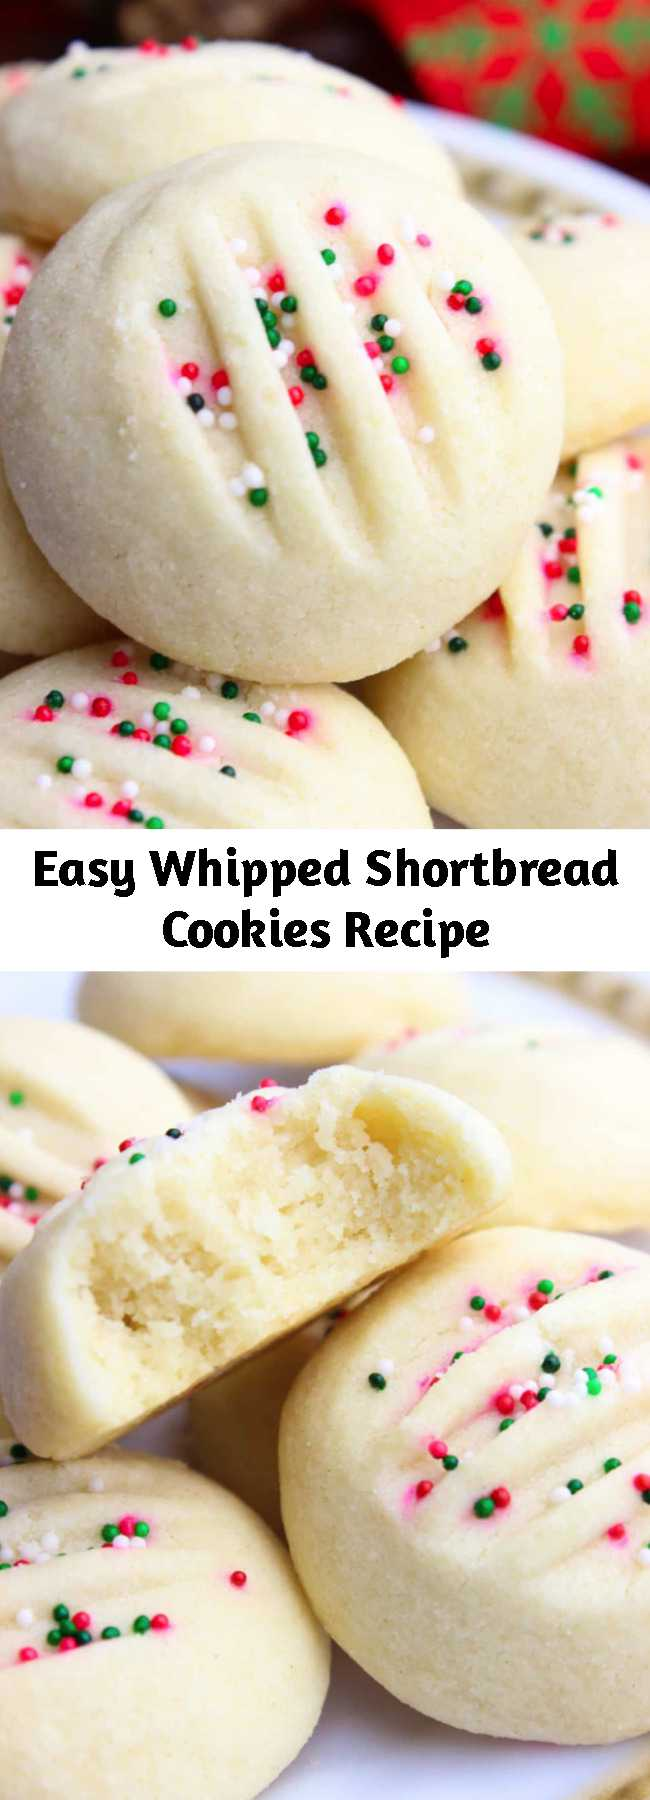 Easy Whipped Shortbread Cookies Recipe - If you are searching for easy Shortbread Cookies, look no further! My buttery and melt in your mouth soft whipped Shortbread Cookies got you covered. #shortbreadcookies #4ingredientscookies #cookies #easycookies #cookiesrecipes #prettycookies #easyshortbreadcookies #christmascookies #christmasrecipes